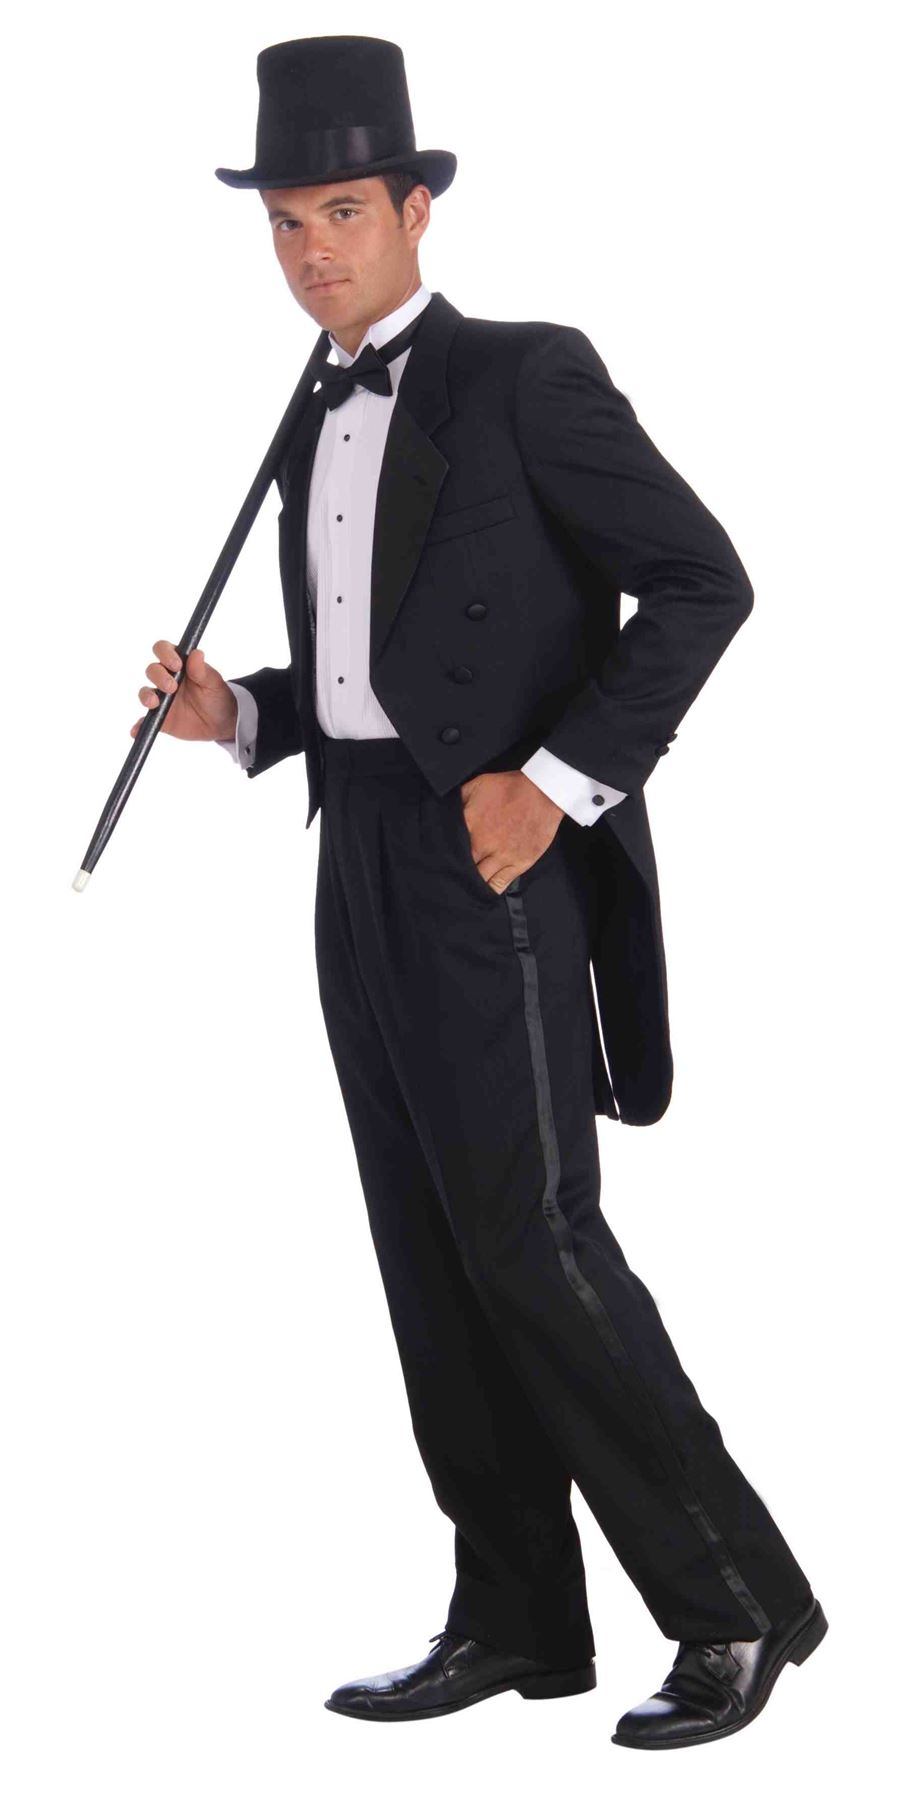 Vintage-Hollywood-Tuxedo-adult-mens-Halloween-Oscars-Costume  sc 1 st  eBay & Vintage Hollywood Tuxedo adult mens Halloween Oscars Costume | eBay